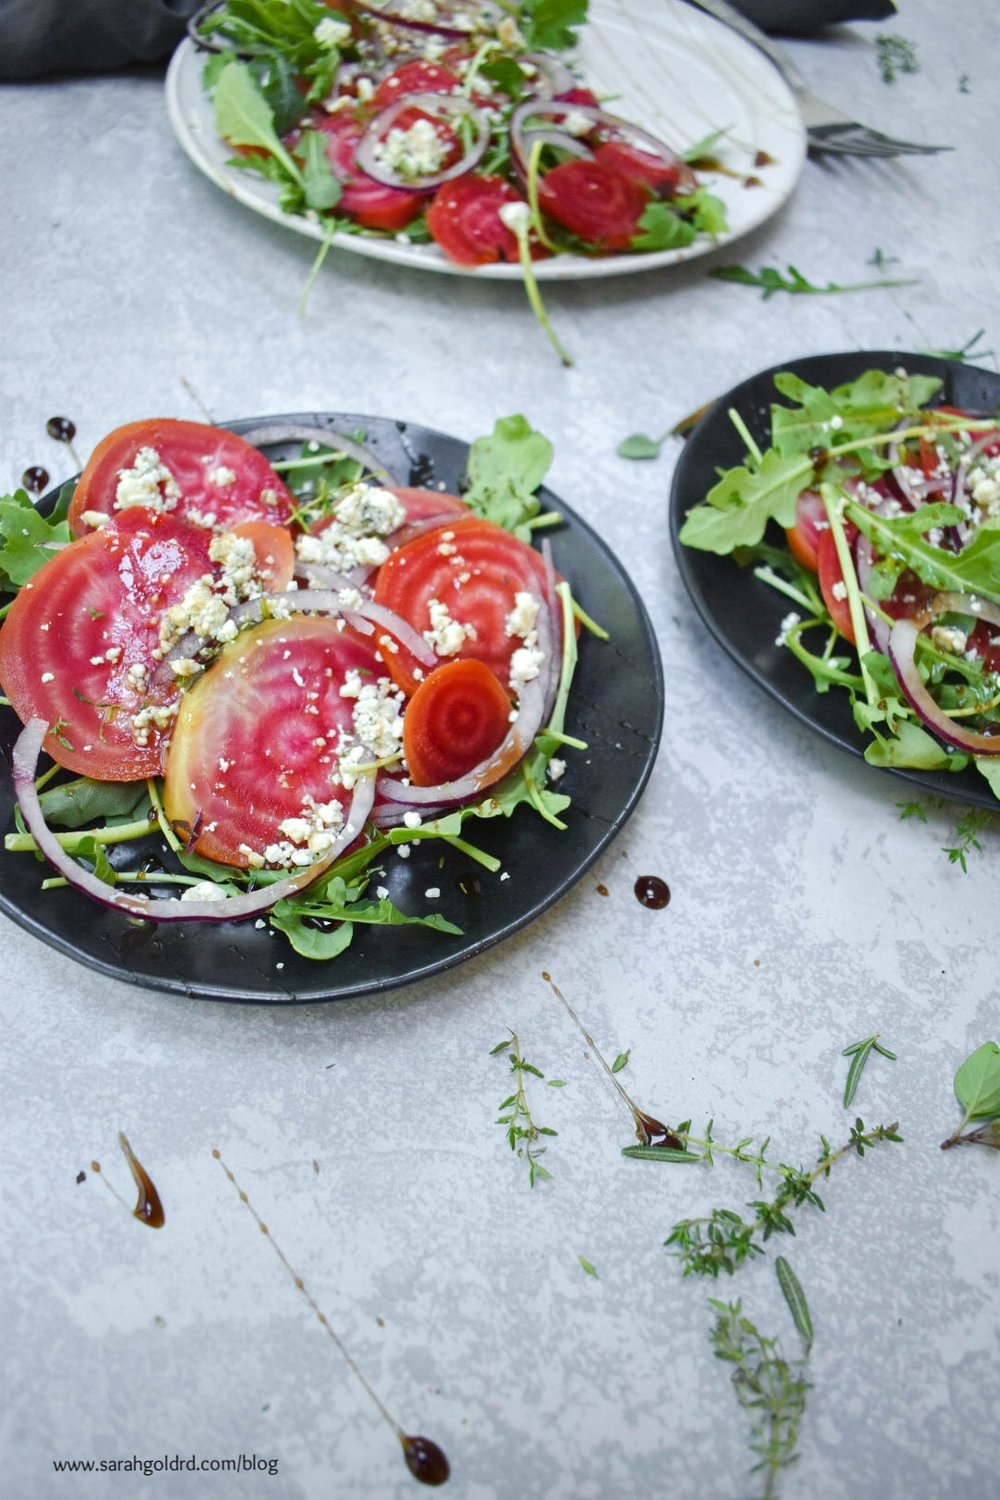 chioggia beet salad with arugula and gorgonzola.jpg